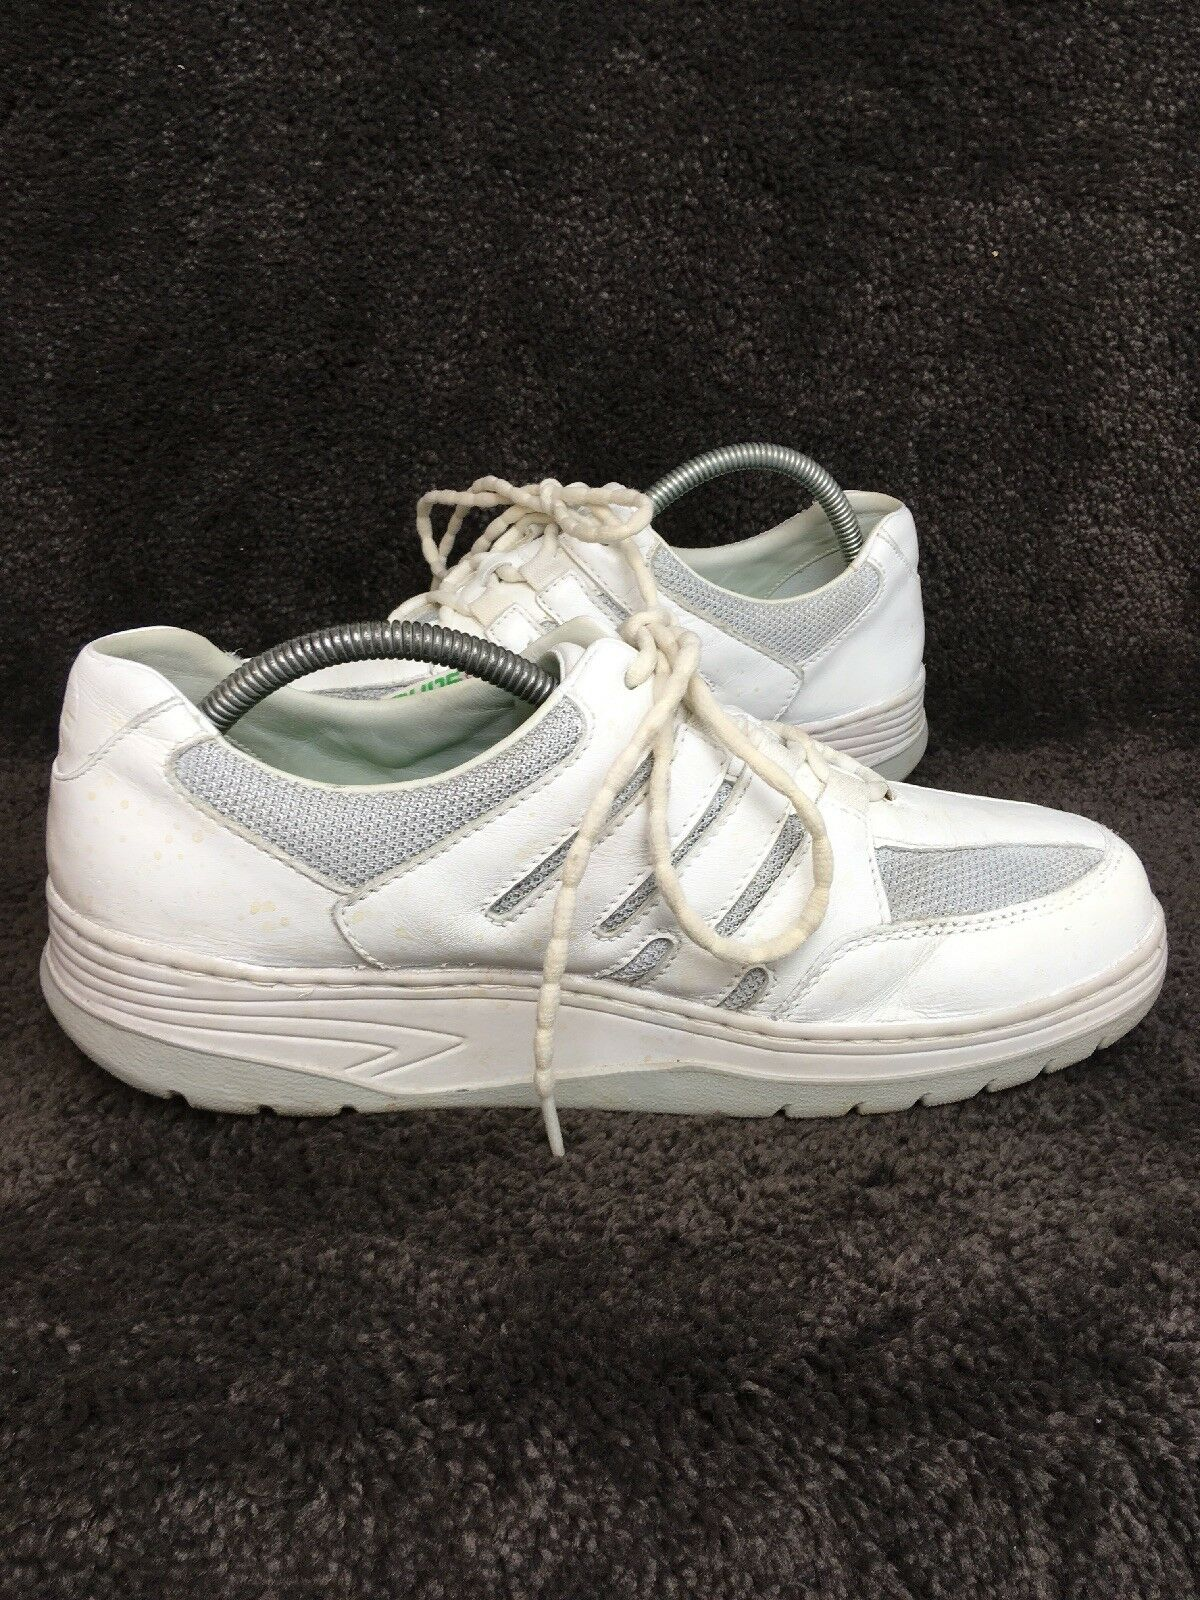 Sano Mephisto White Leather Leather Leather Nurse Walking Rocker Comfort Sneakers shoes US 8.5 21abaa